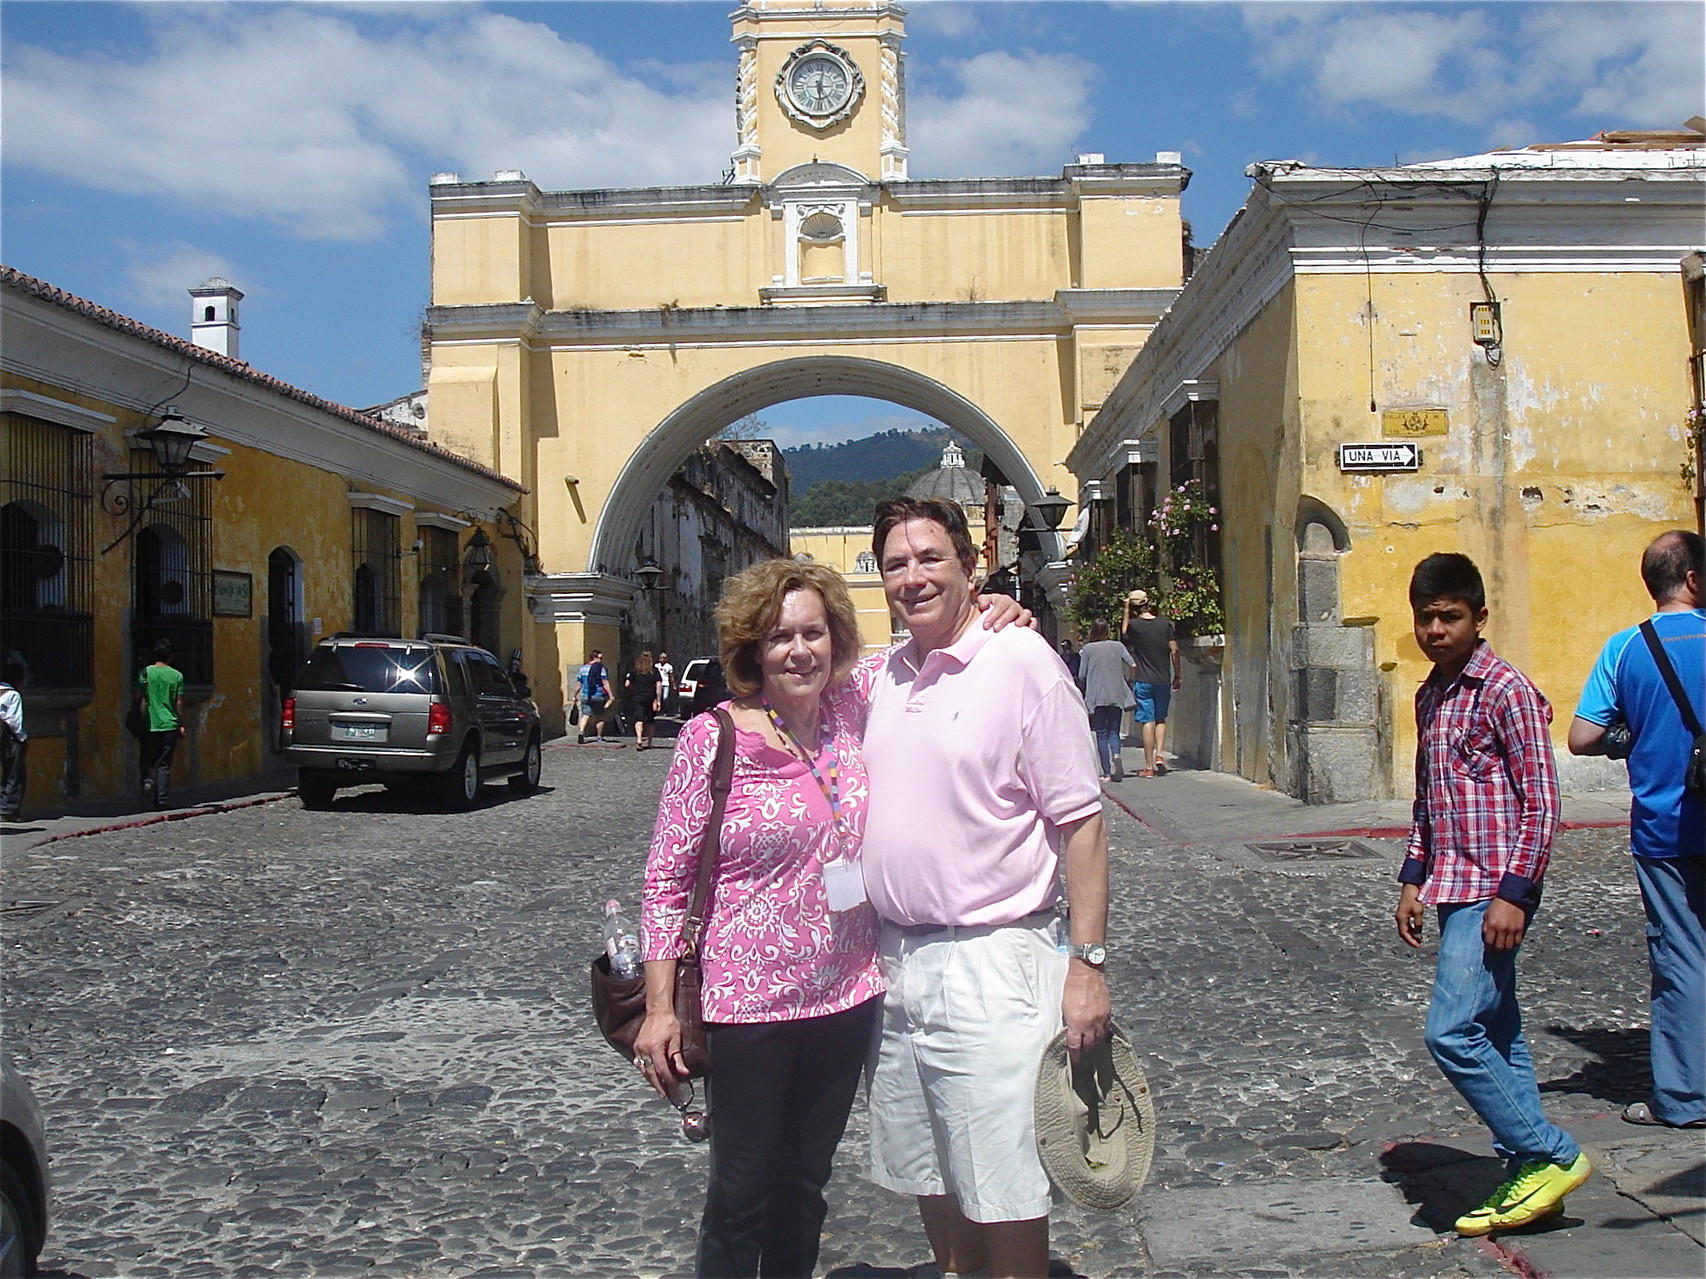 Lorraine & John at the arch in La Antigua